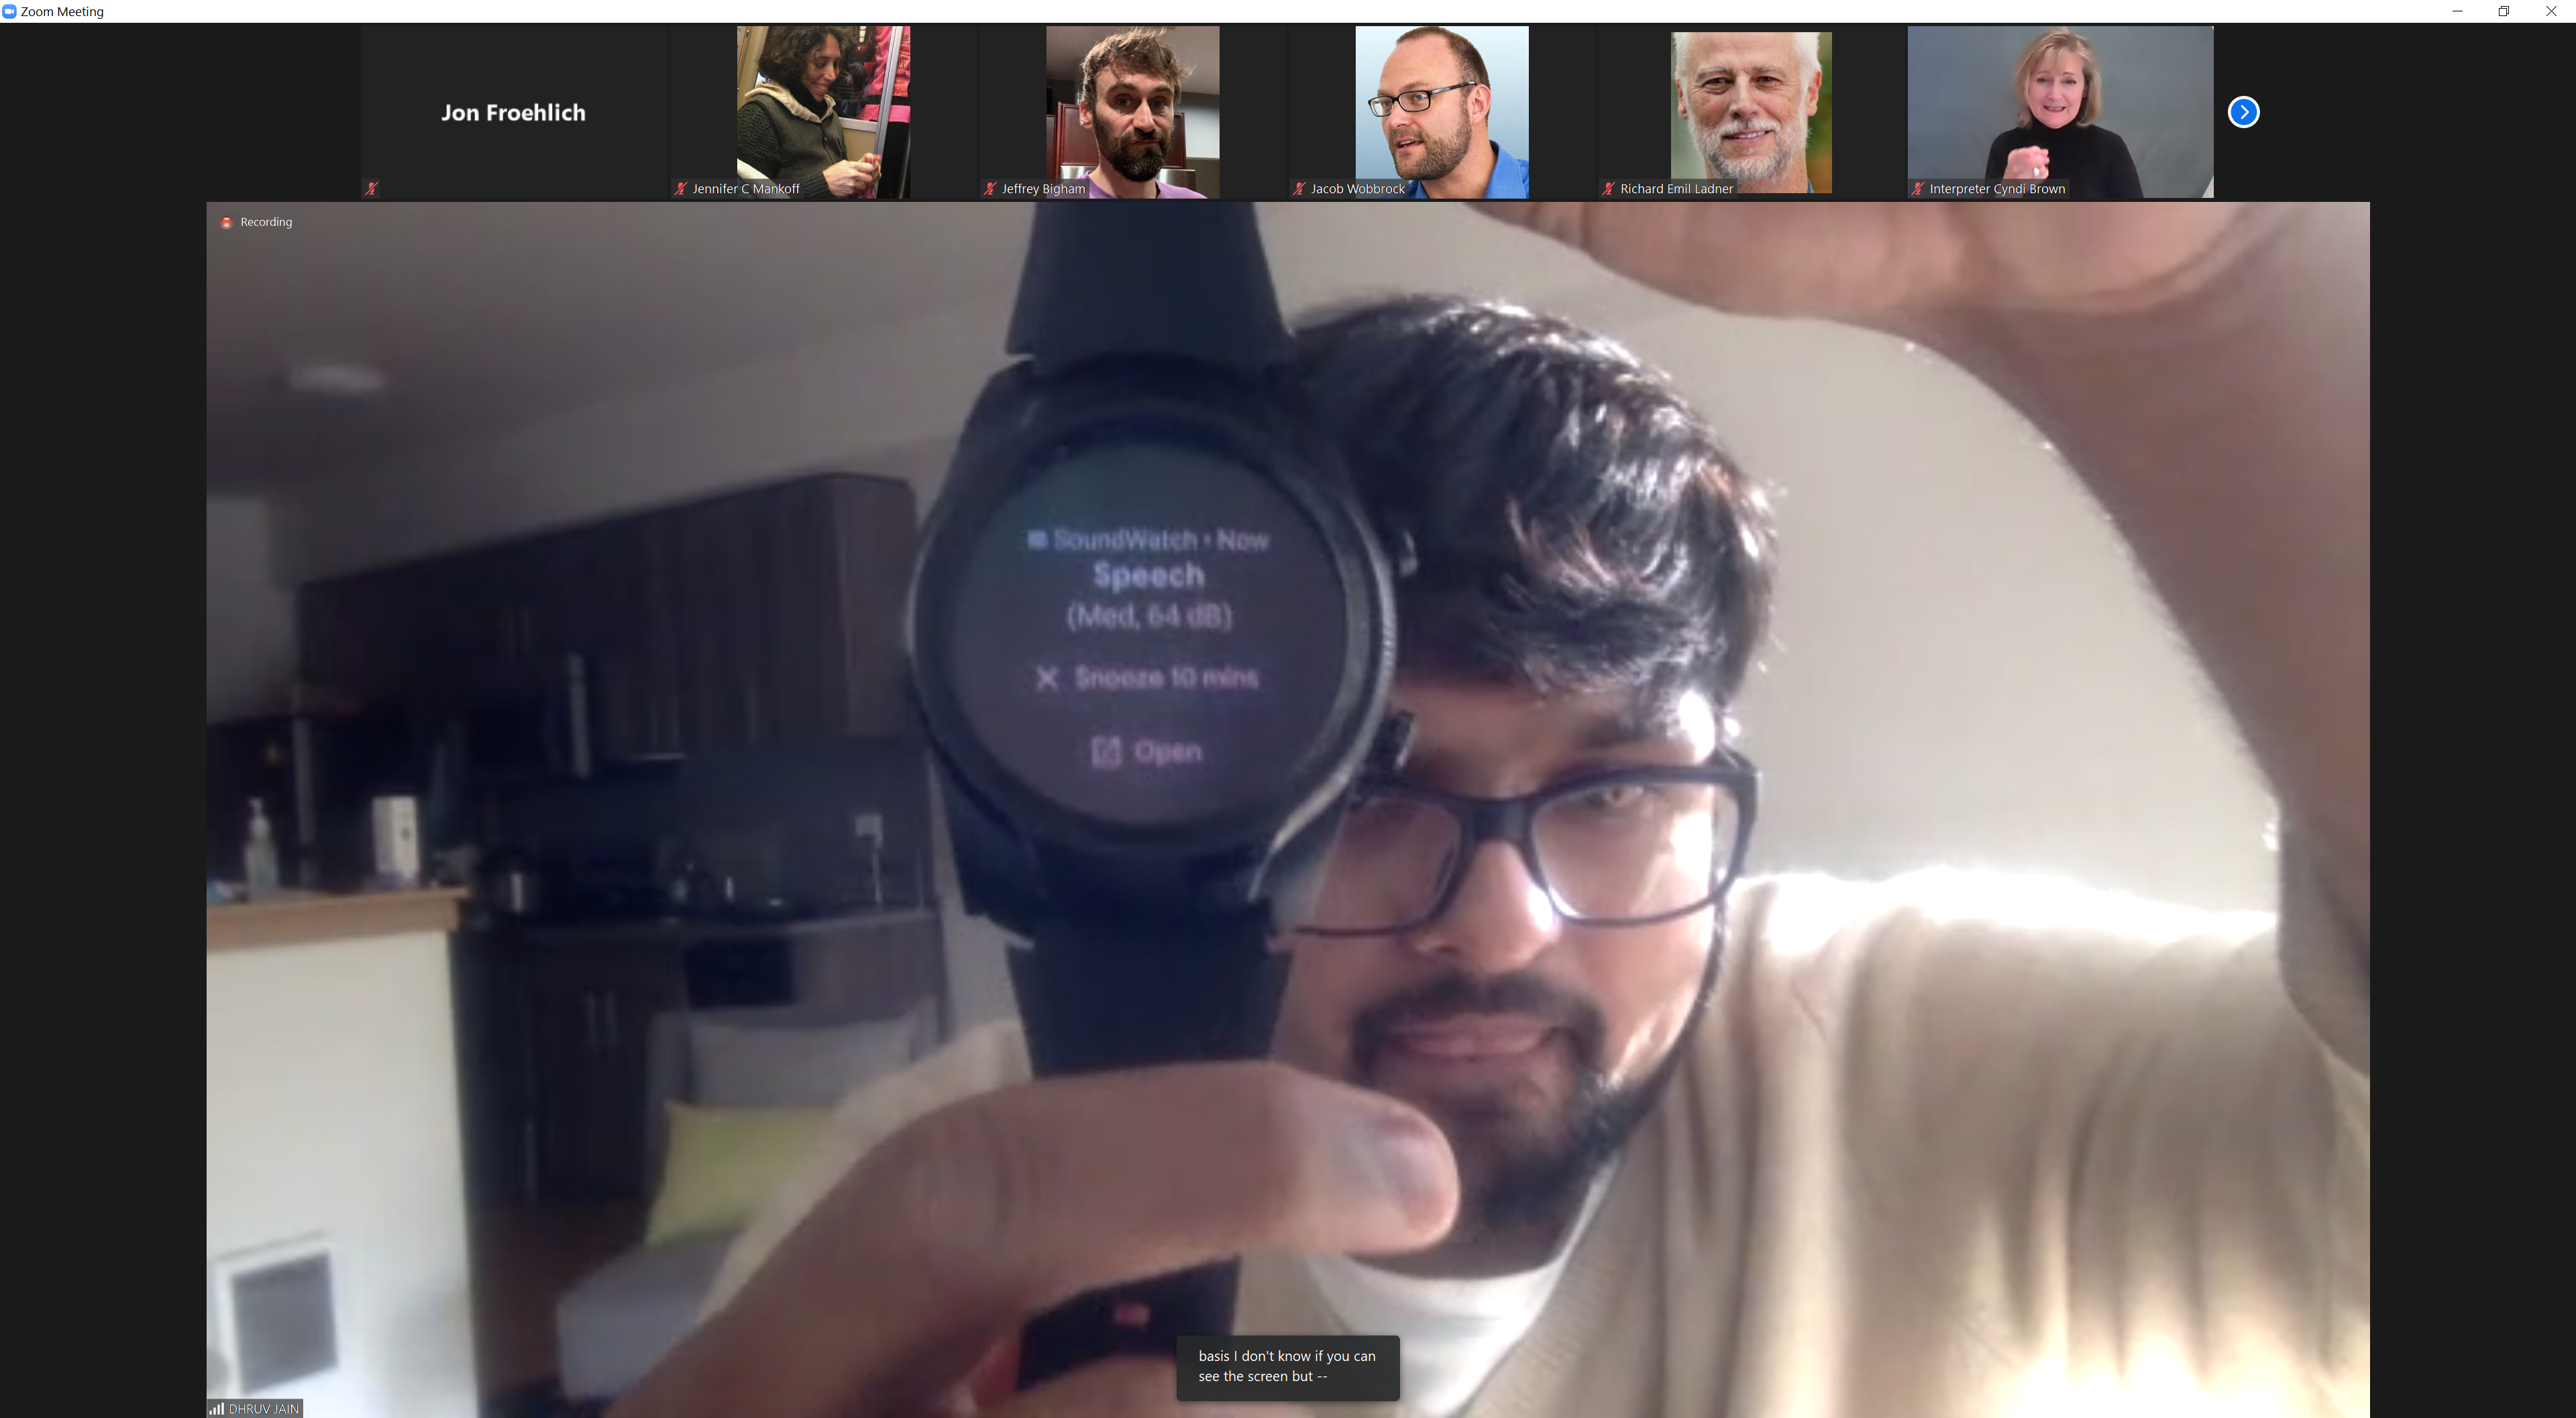 Image shows DJ holding an Android watch running the SoundWatch app, which has inferred that speech is inferring around him and shows this on the display